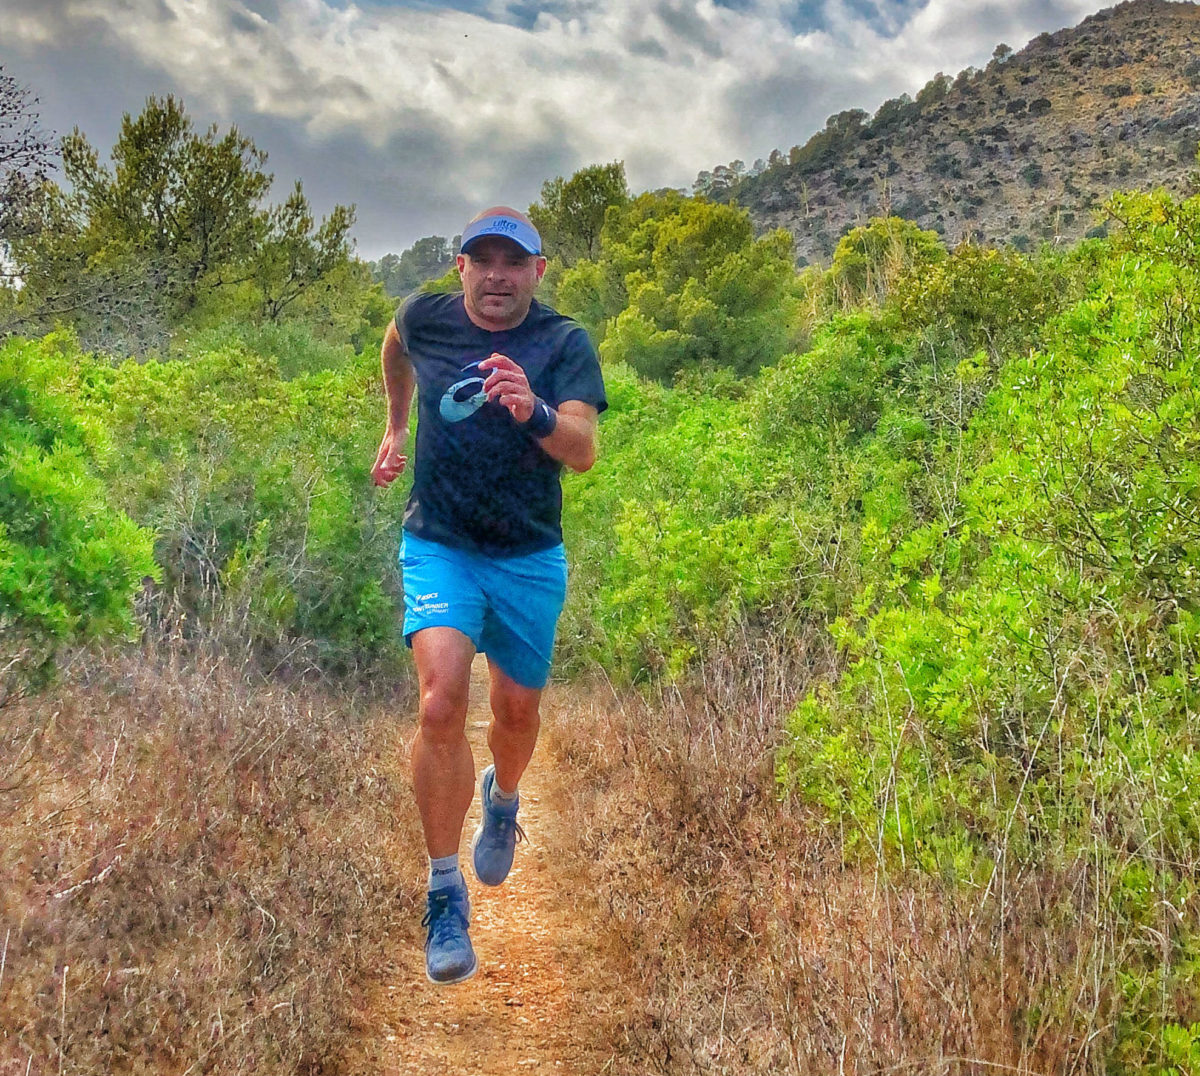 As an experienced trail runner, Frank Bauknecht knows exactly what it takes to run in the great outdoors. Make use of his tips!  Check our new blog post:   http:// bit.ly/correctly_runn ing   …   #beyoubeactive #pjuractive #2skin #pjuractive2skin #nochafing #antichafing #stopblisters<br>http://pic.twitter.com/IadTX84l11